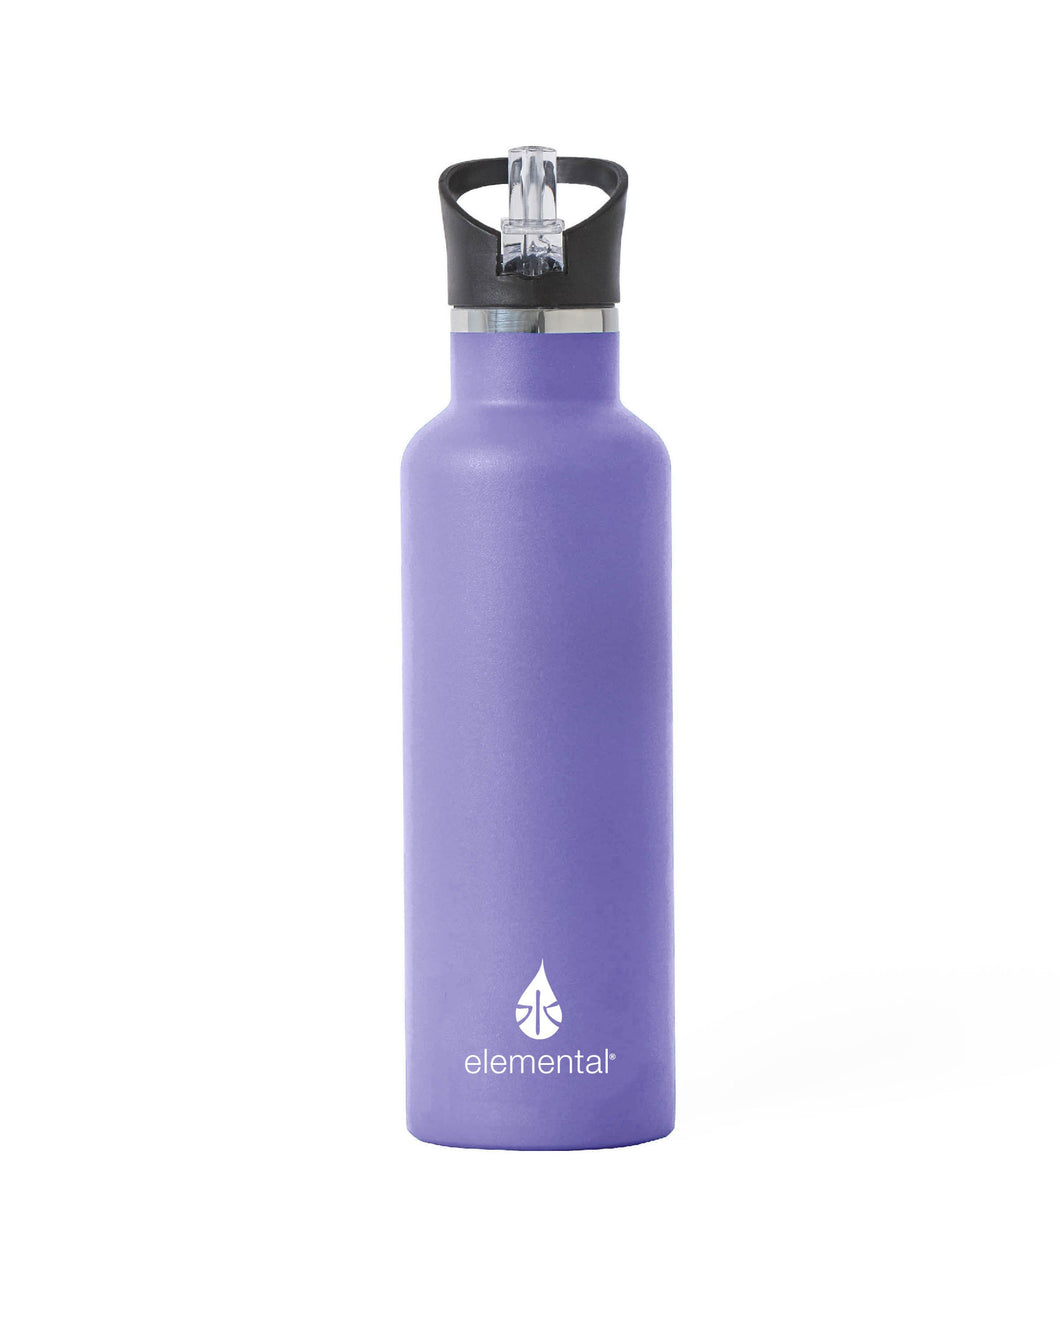 25 oz. Elemental Stainless Steel Sport Water Bottle - Lavender with Black Sport Top